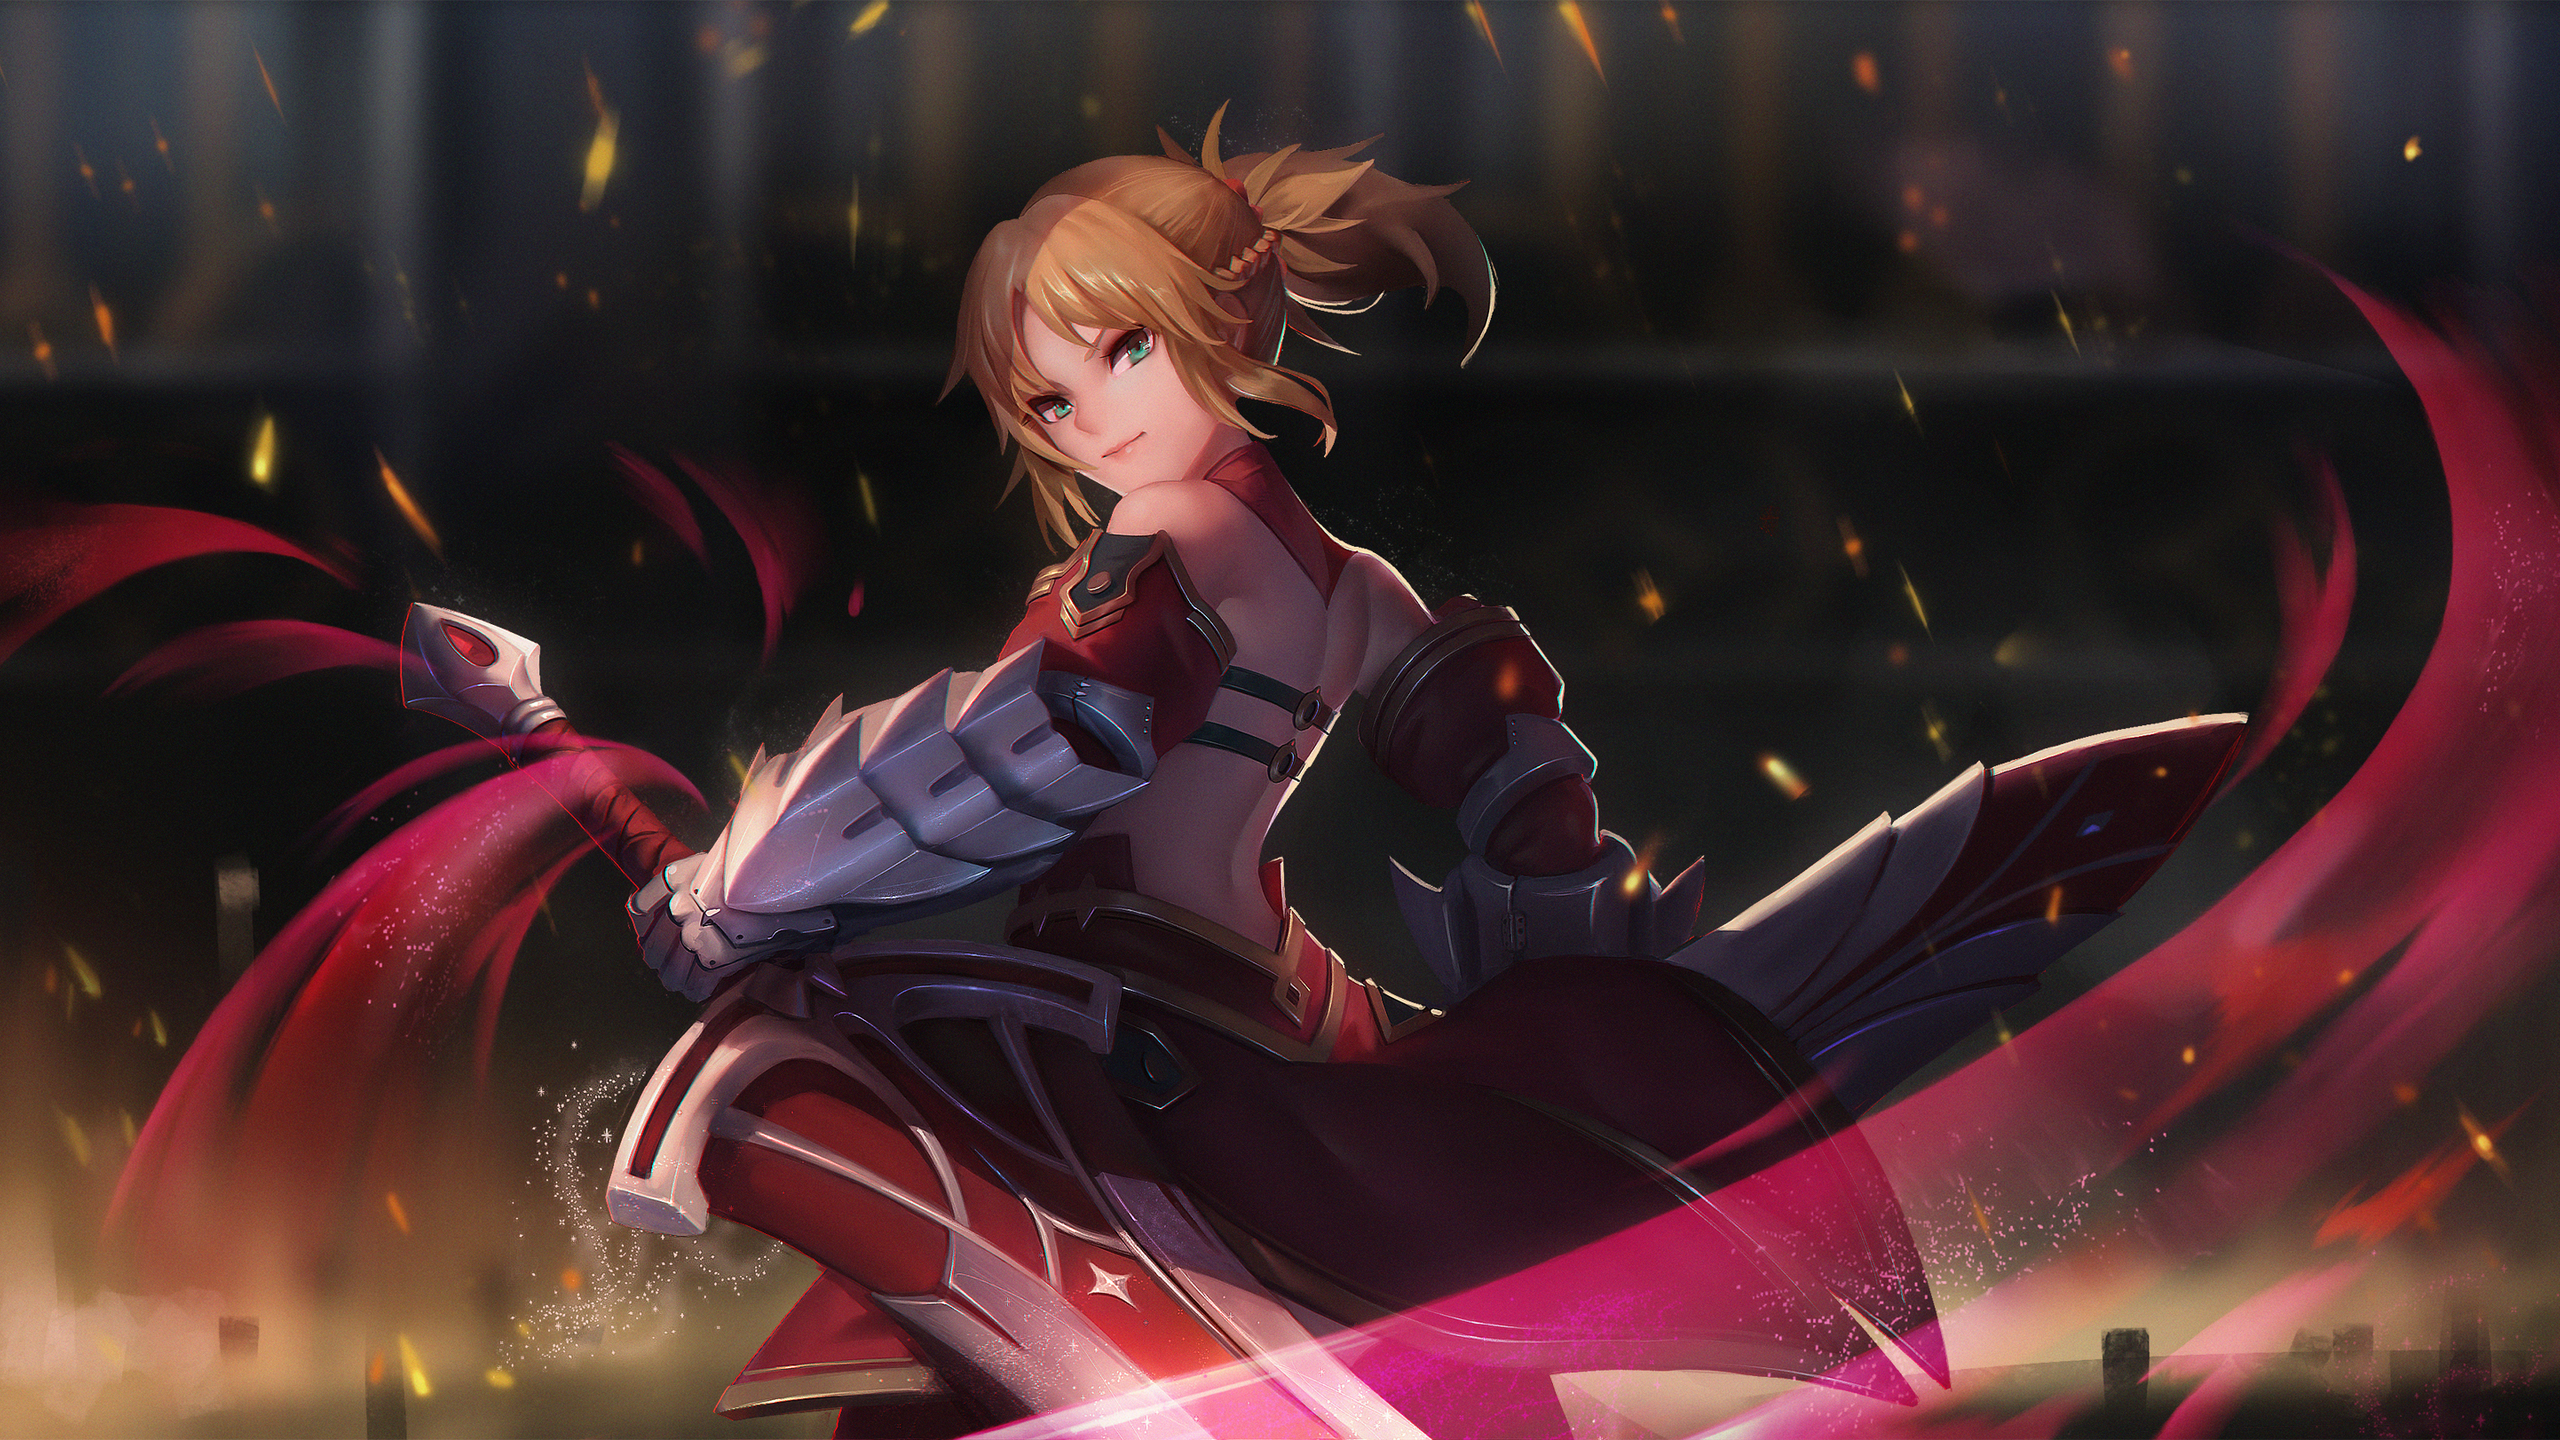 2560x1440 Saber Of Red Fate Grand Order 1440p Resolution Hd 4k